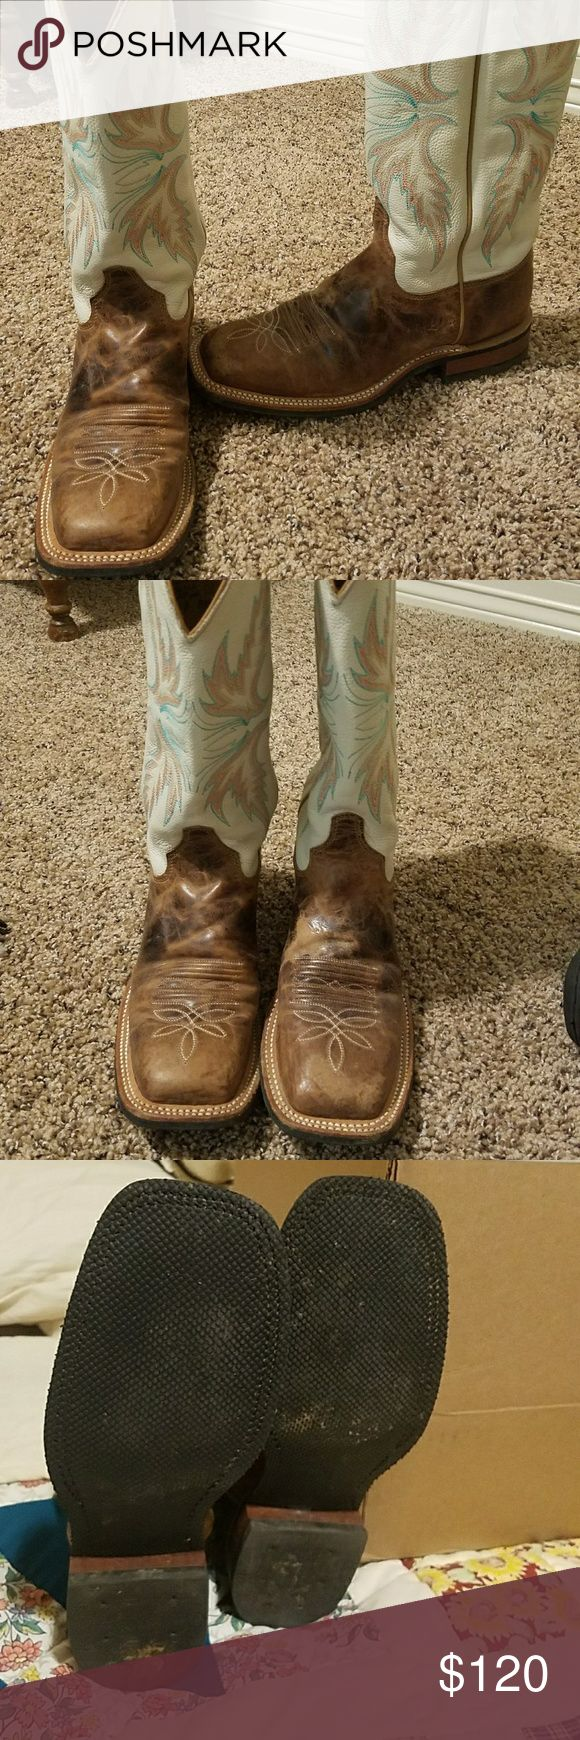 Women's Justin square toe boots Great condition boots, I wore once got from here but are to tight. These boots are georgous. Lots of life left. Justin Boots Shoes Winter & Rain Boots